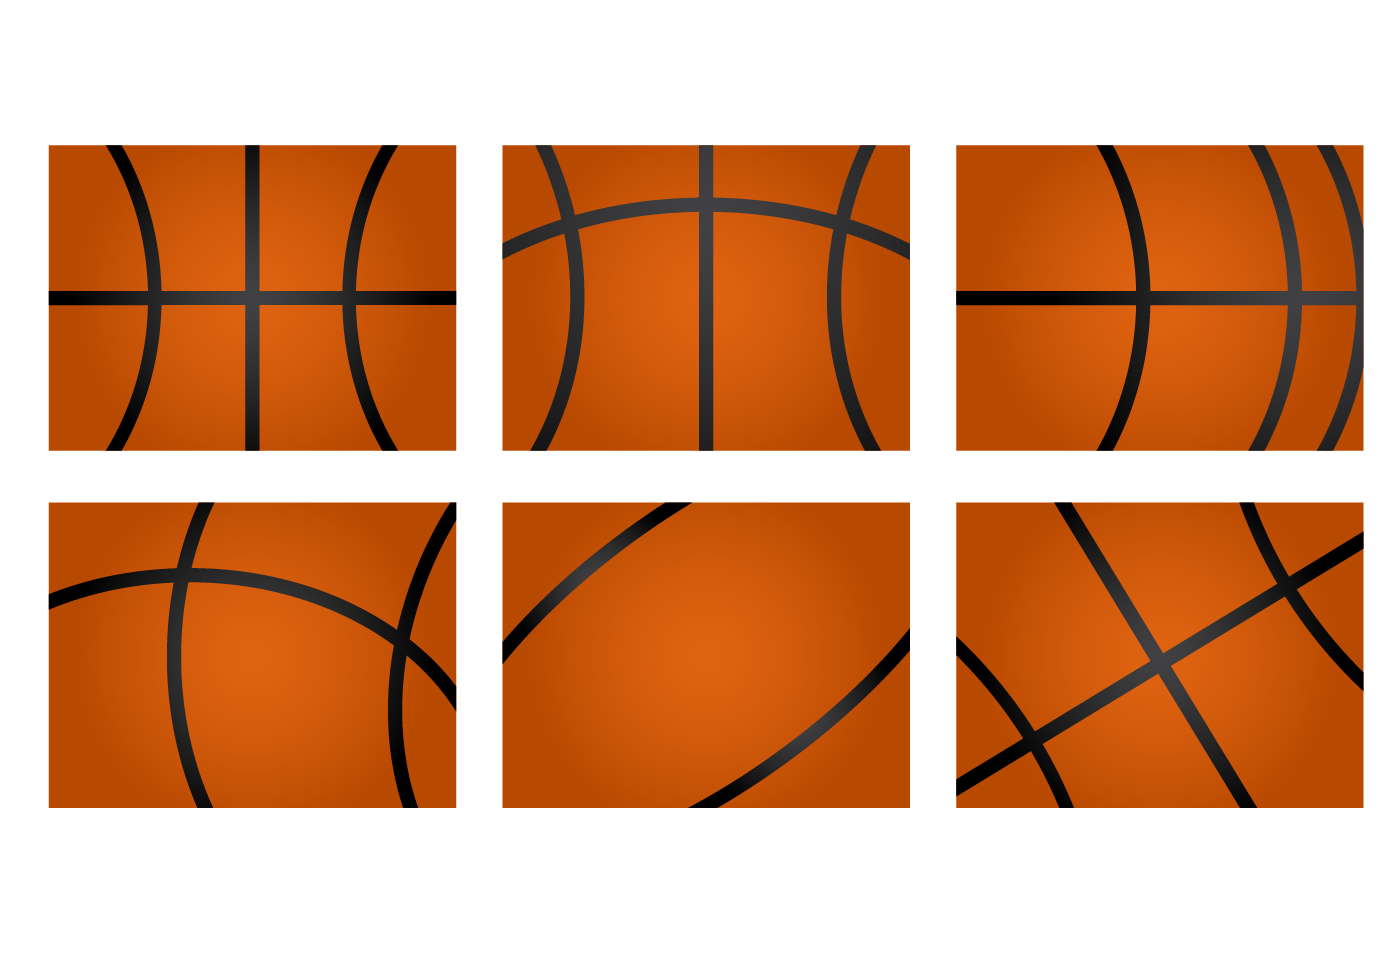 Free basketball texture vector download free vector art stock graphics images for Free basketball vector